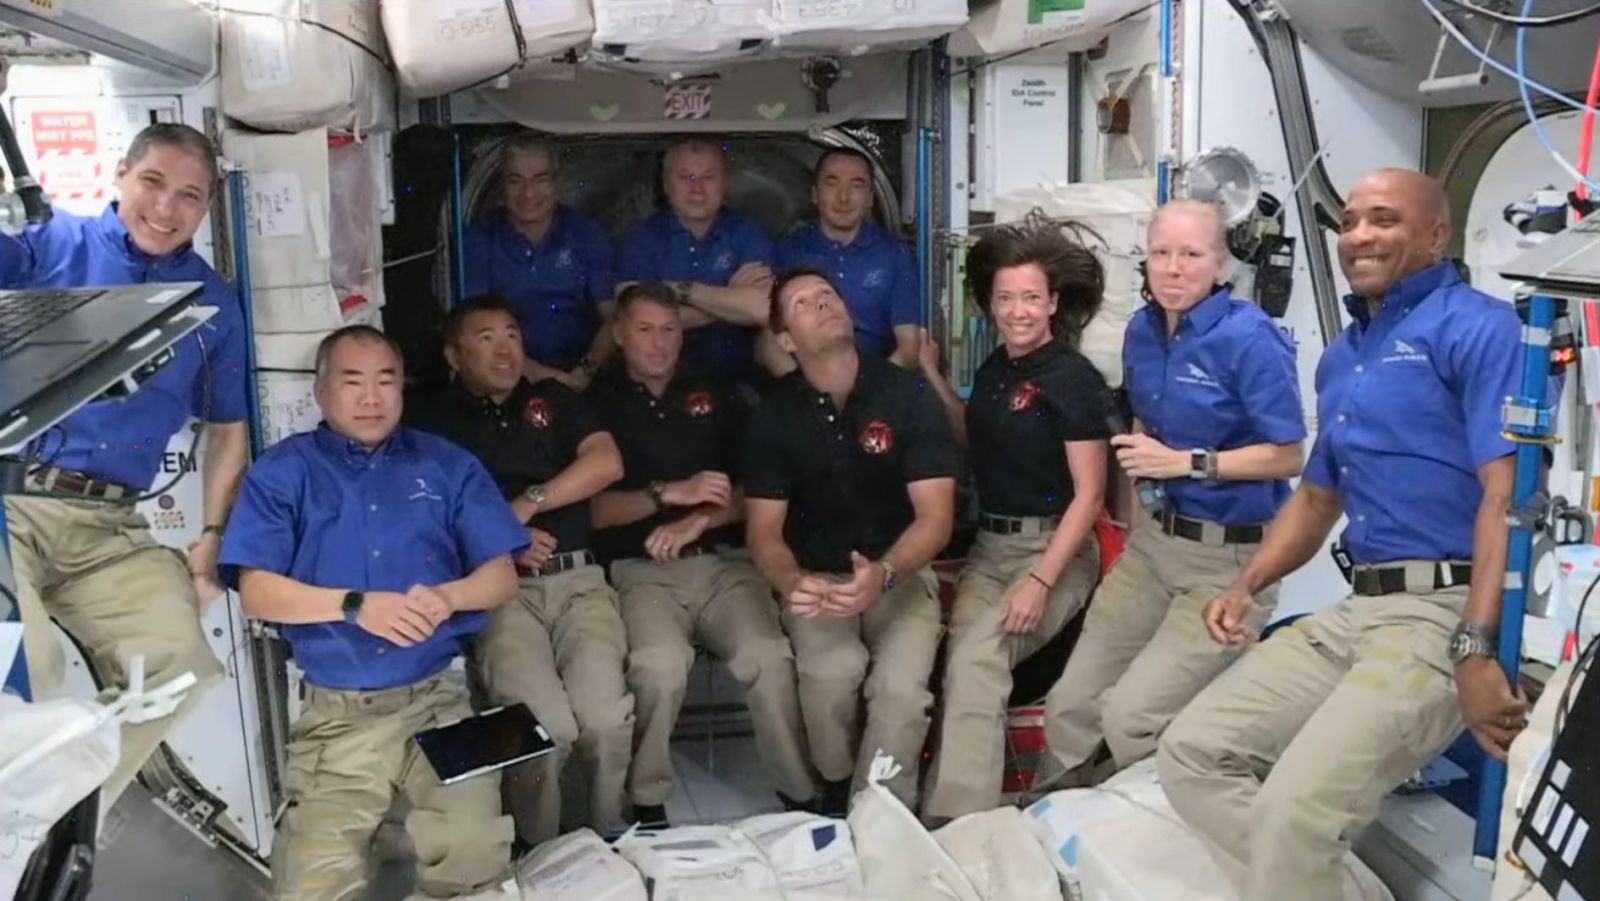 Following the arrival of the Crew-2 Dragon astronauts, seen in black shirts, the International Space Station's population temporarily increased to 11. Credit: NASA